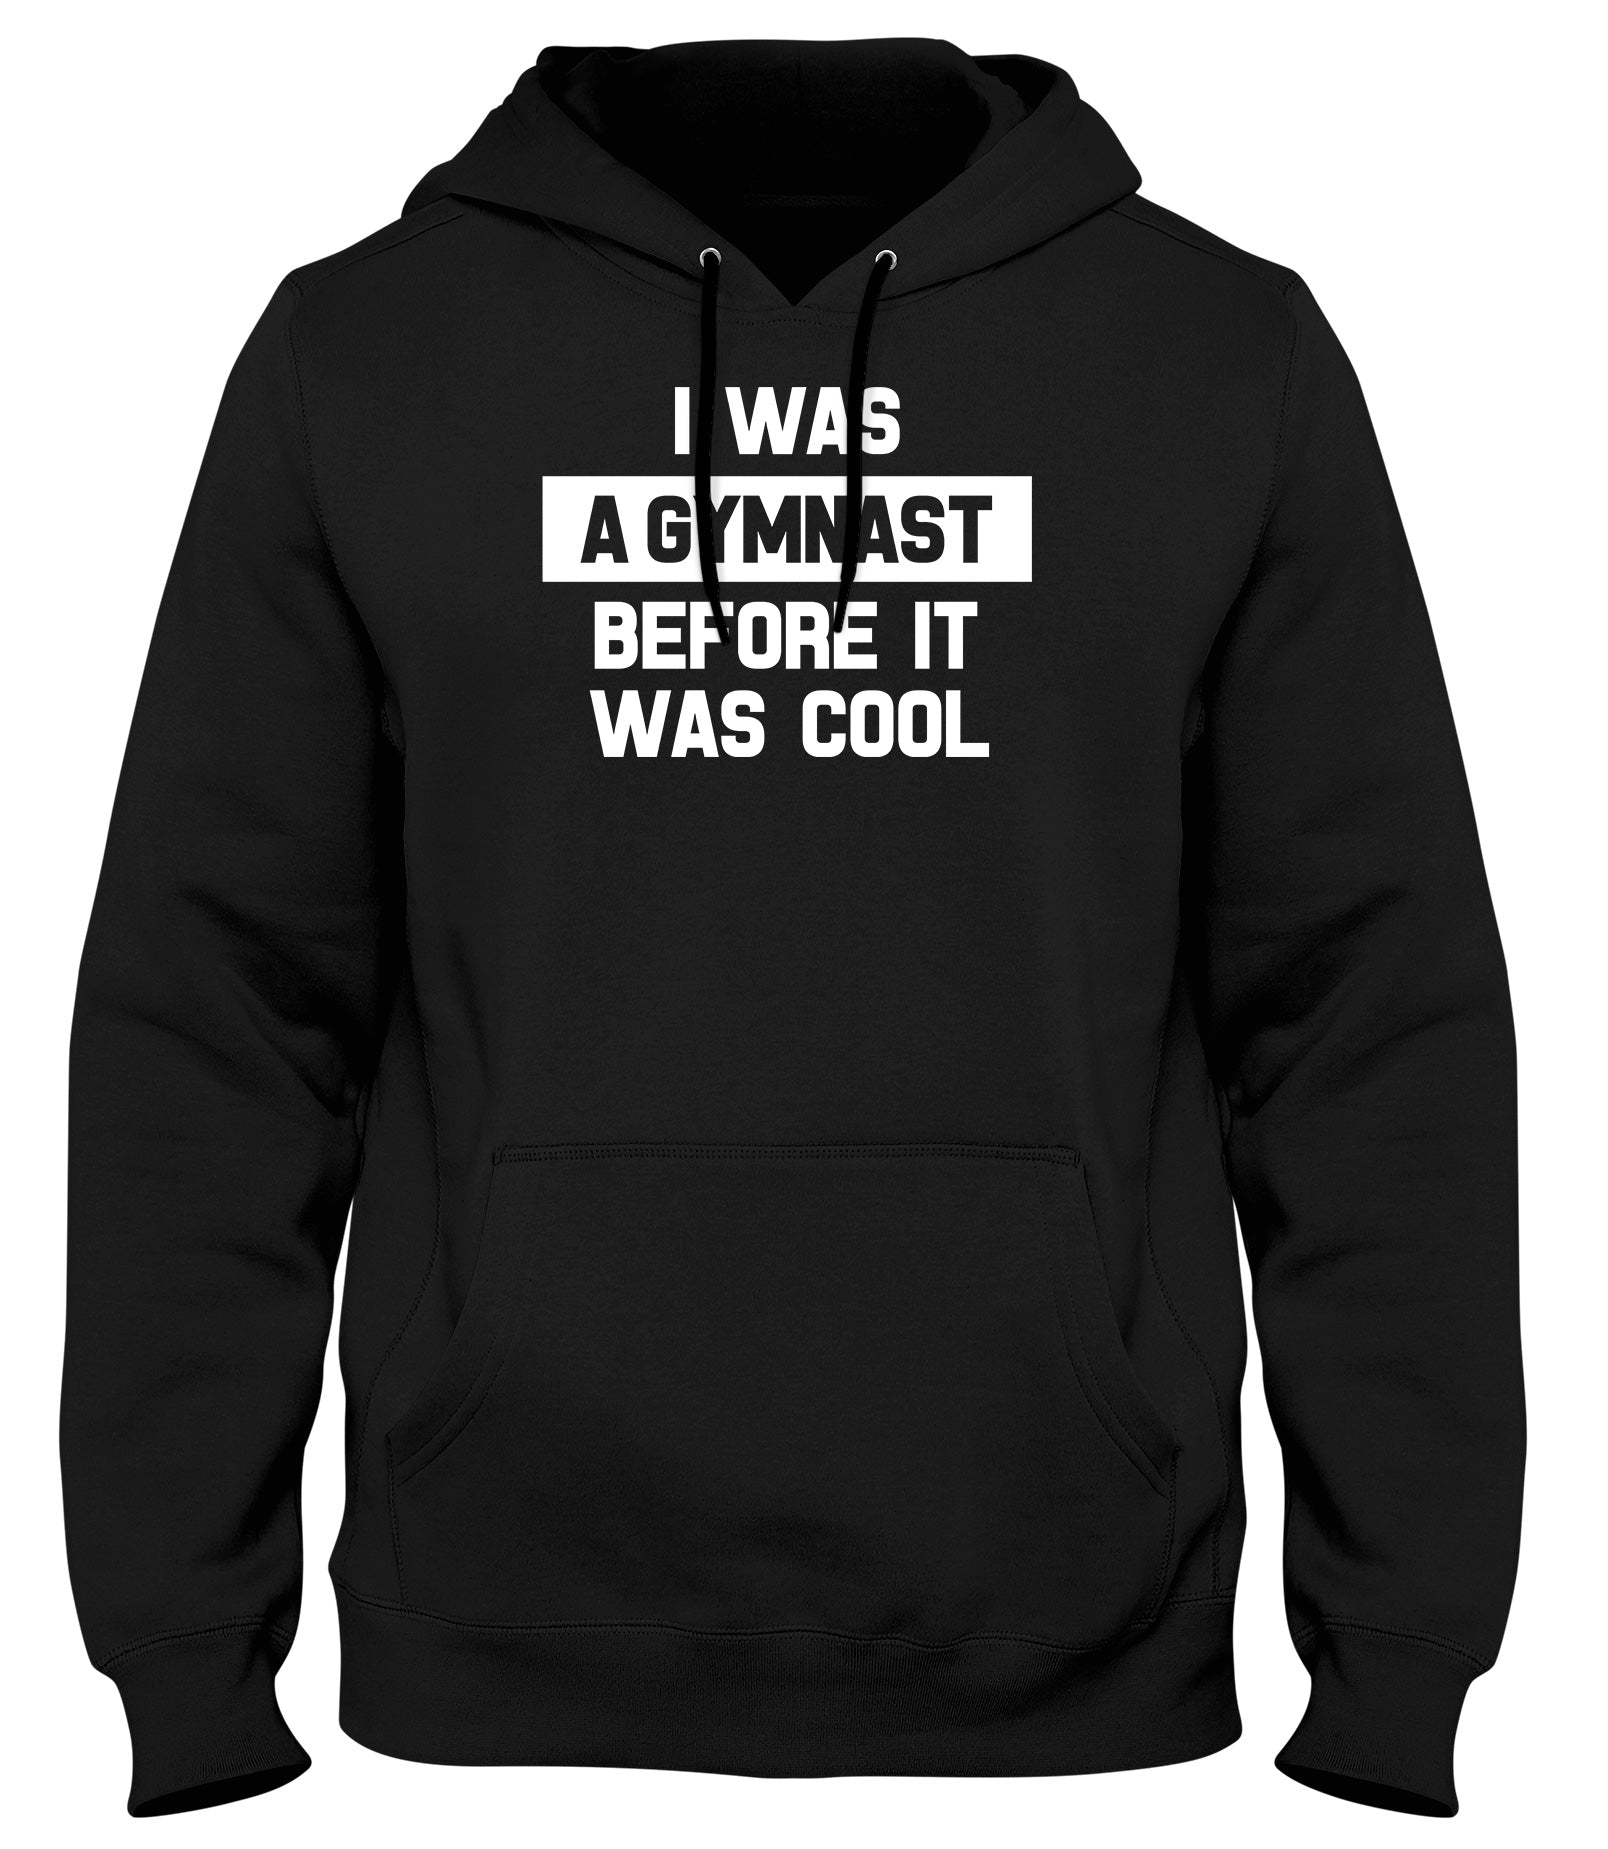 I WAS A GYMNAST BEFORE IT WAS COOL WOMENS LADIES MENS UNISEX HOODIE